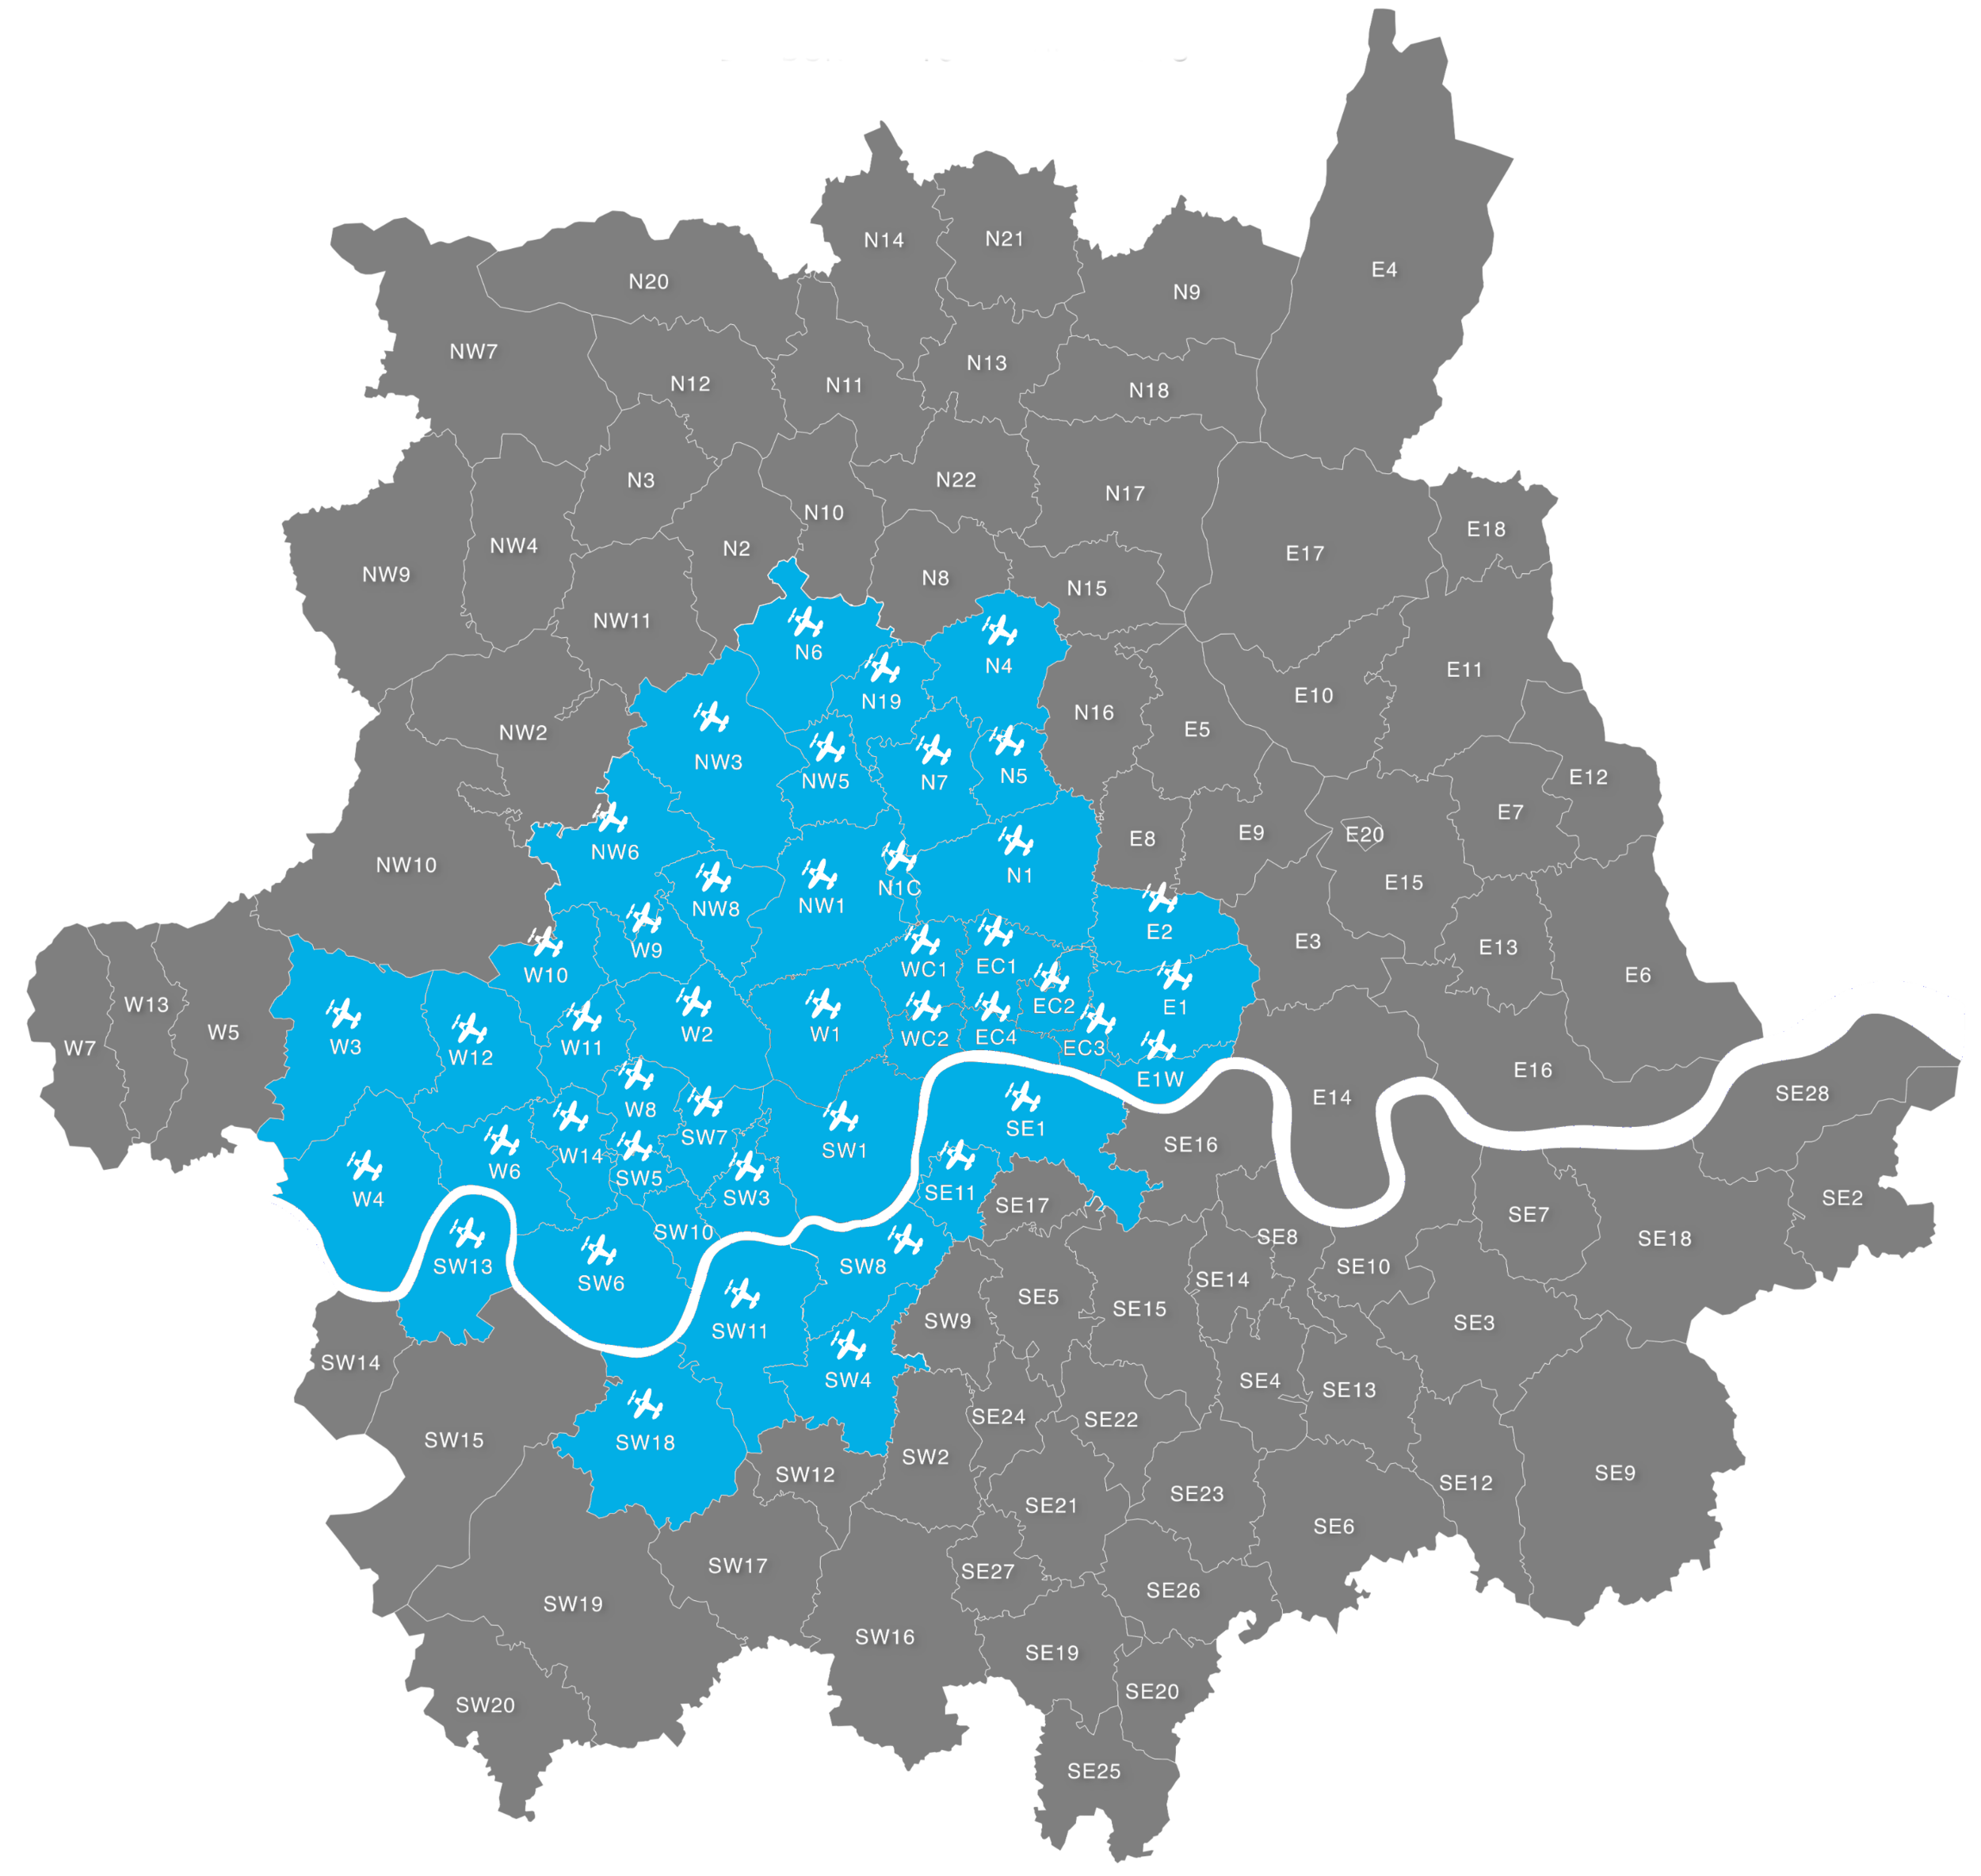 02-London-postcodes 5 map.png